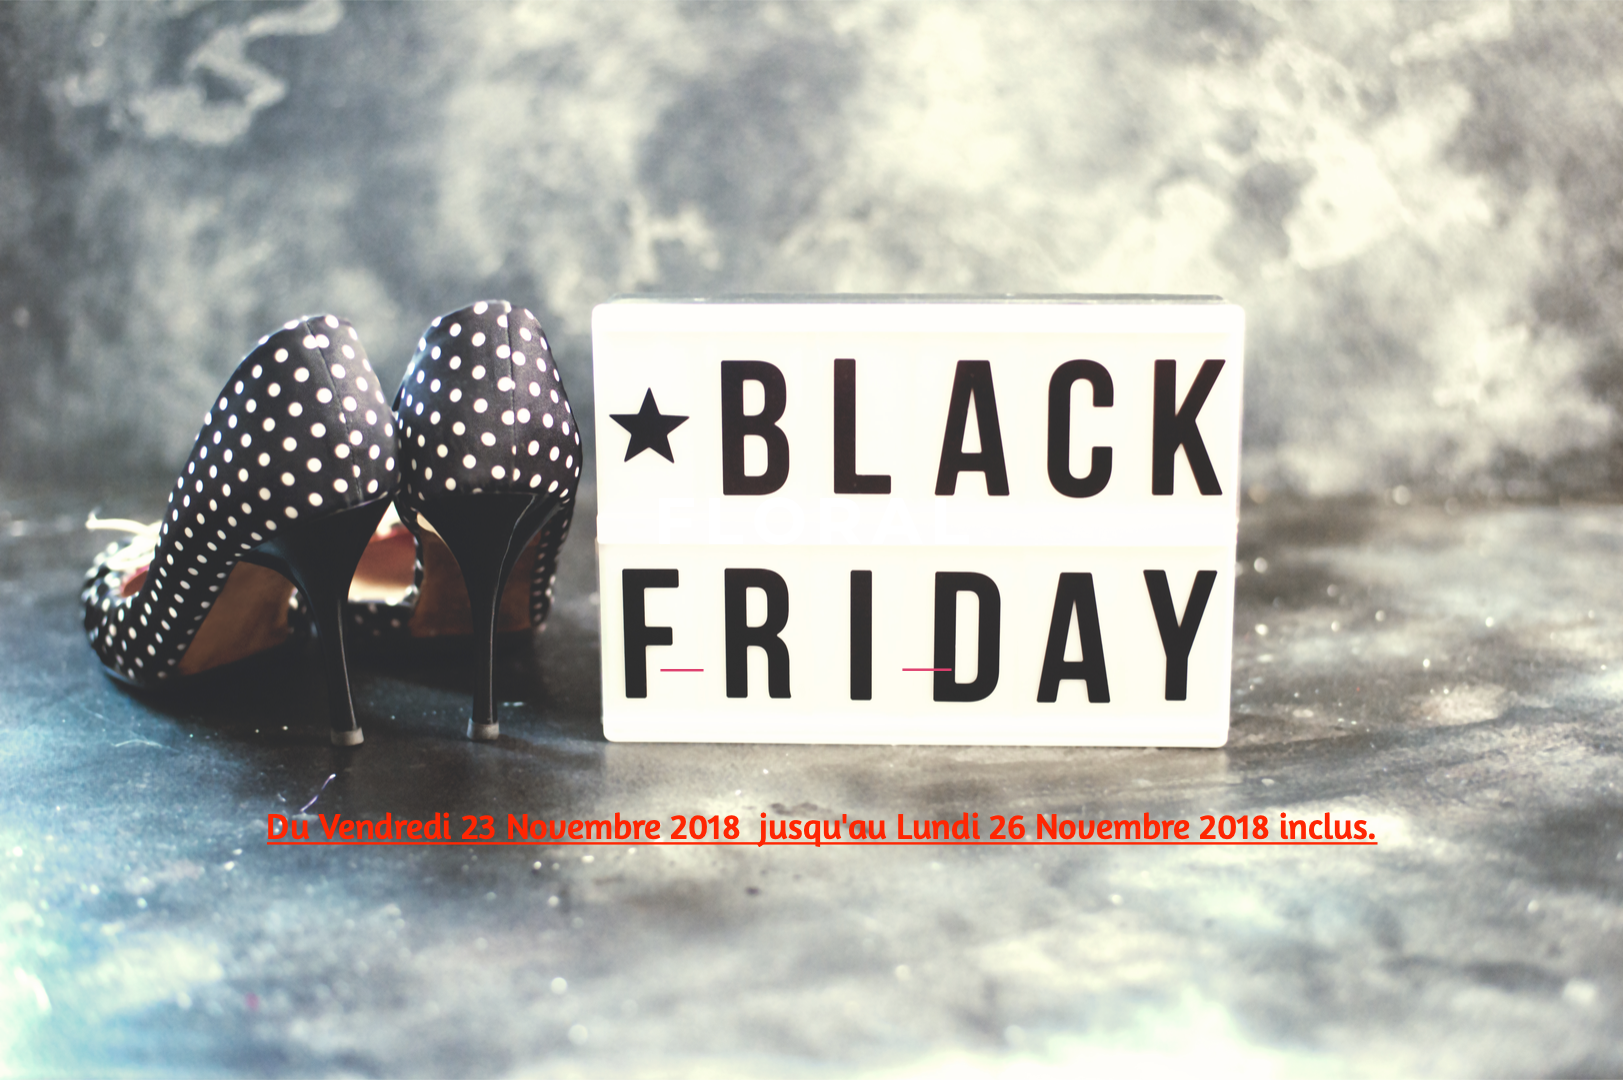 BLACK FRIDAY NOVEMBER